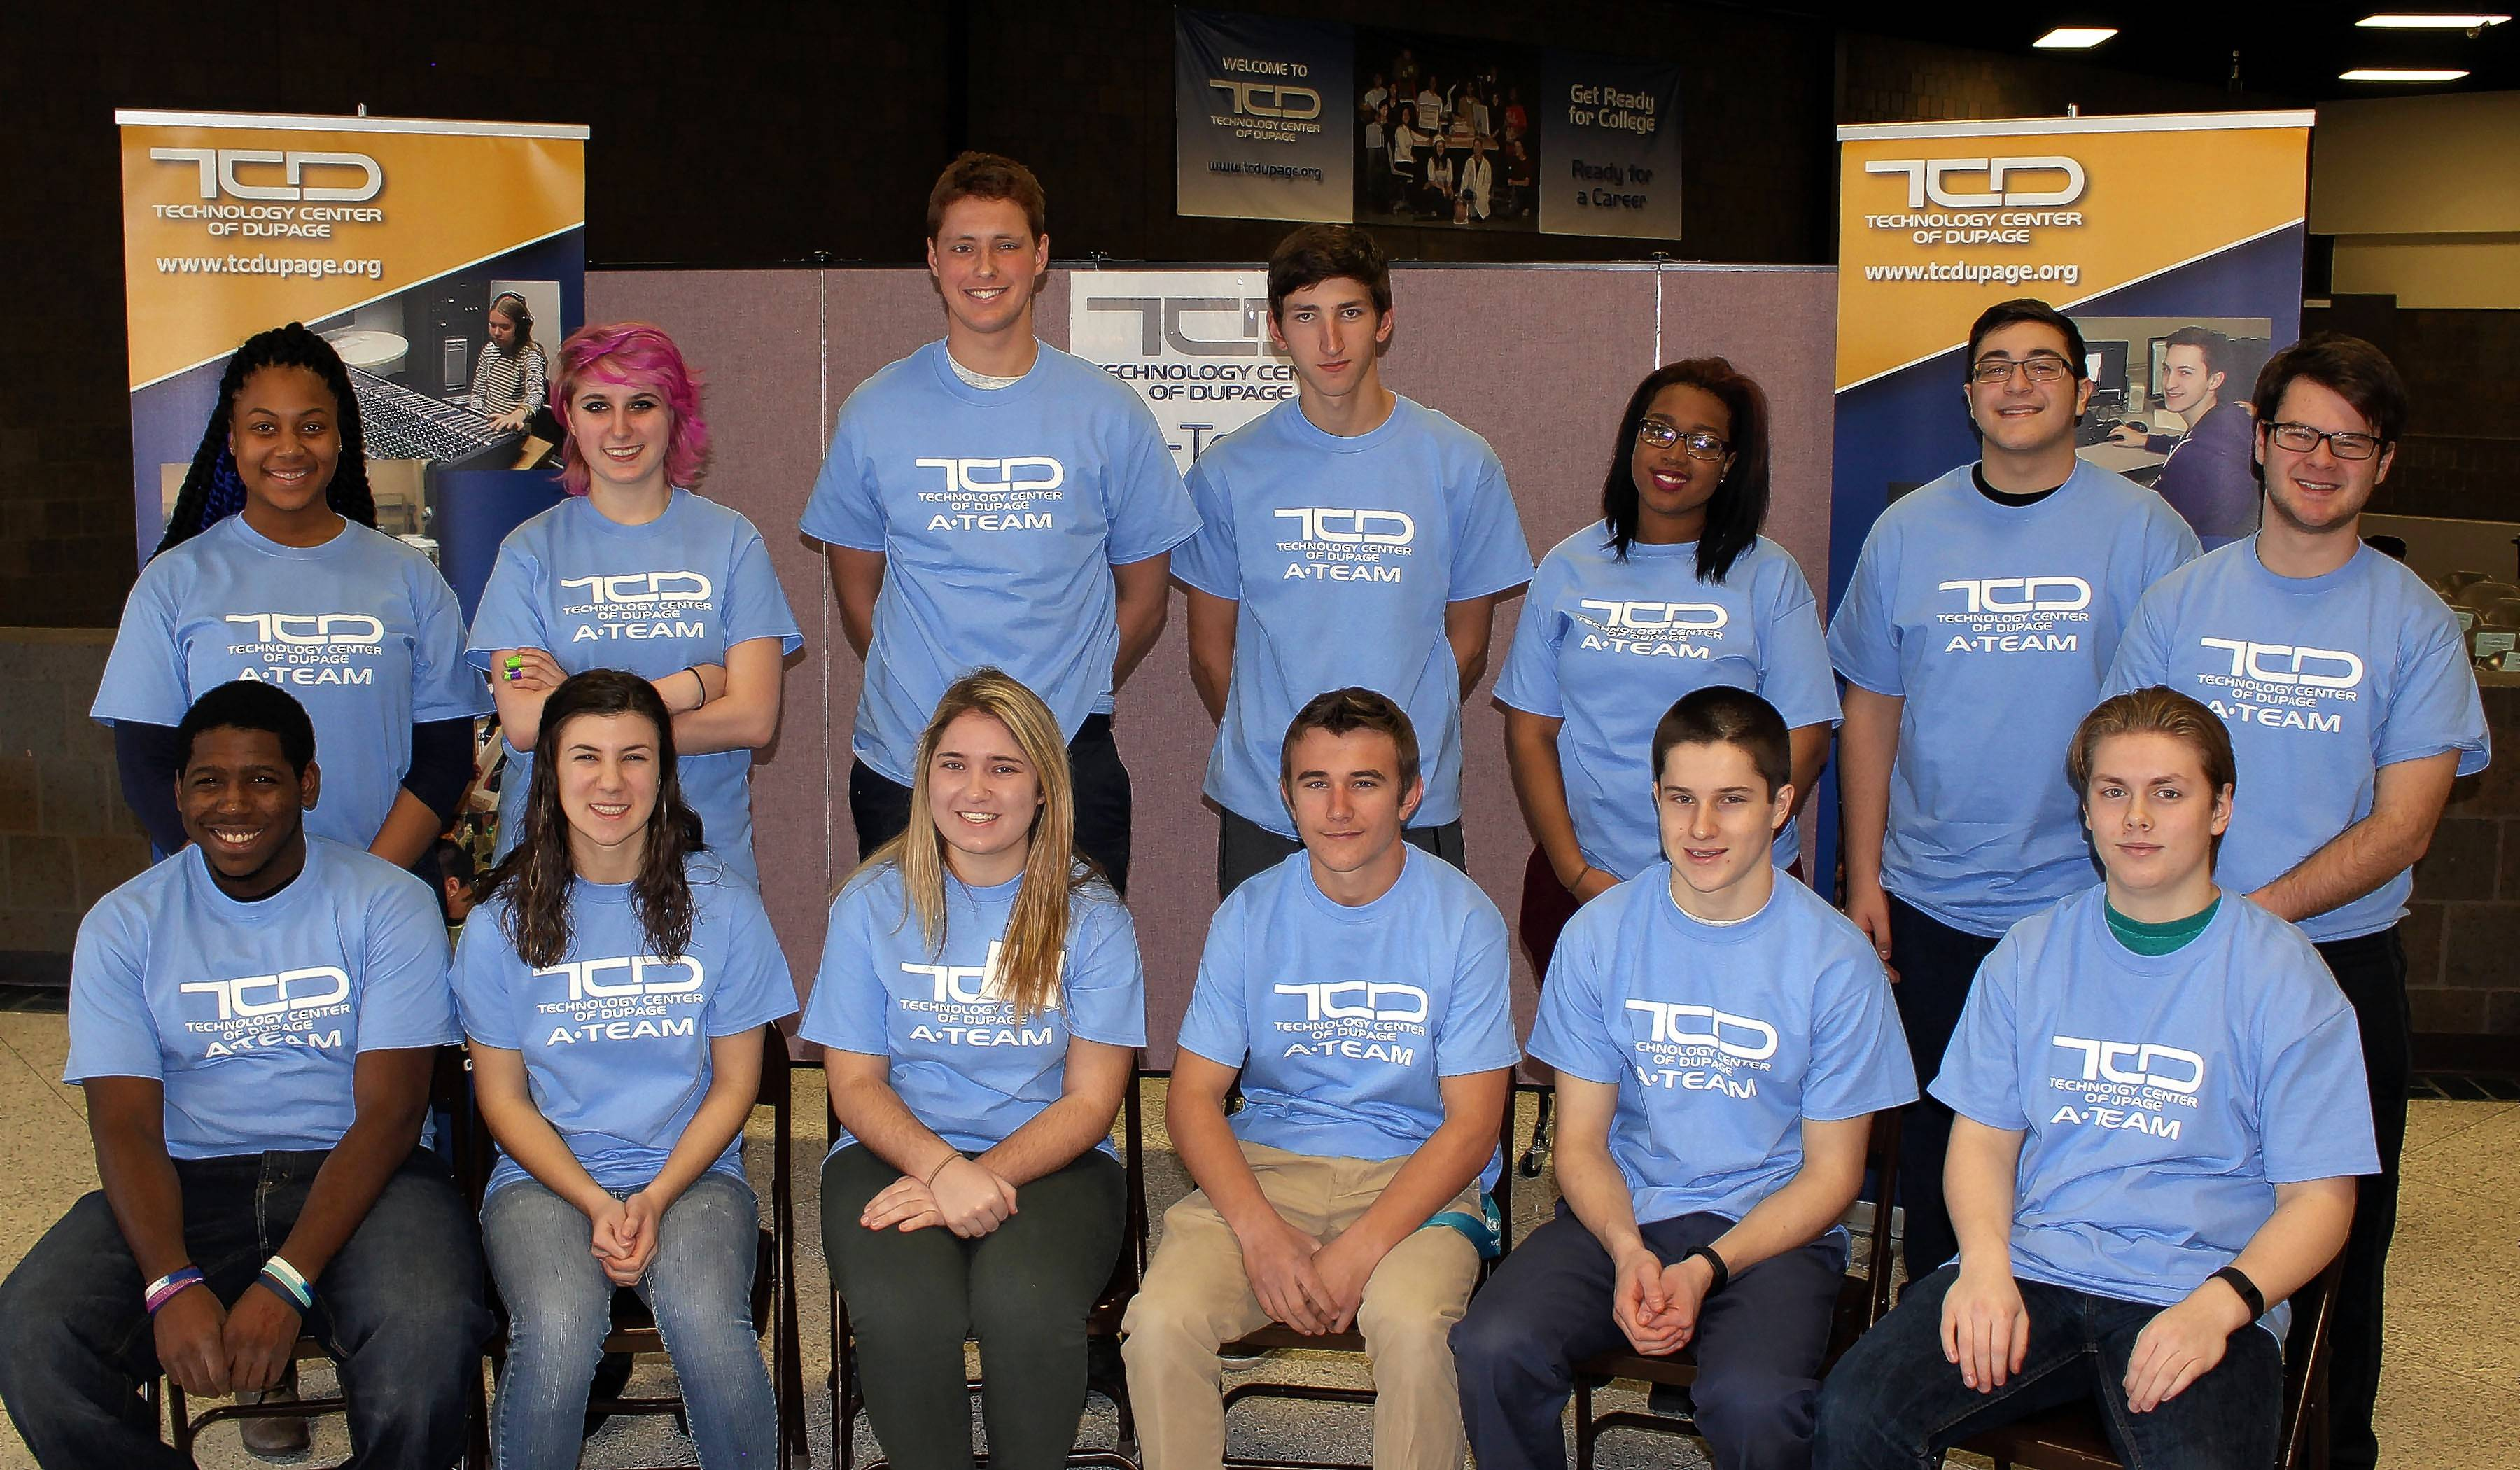 Technology Center of DuPage's 377-member A-Team honor roll includes these morning session students from Downers Grove South High School who represent excellence in nine of TCD's 20 CTE programs: medical terminology, fire science-EMT, culinary, nursing assistant, multimedia, criminal justice, automotive technology, early childhood education and computer information systems.